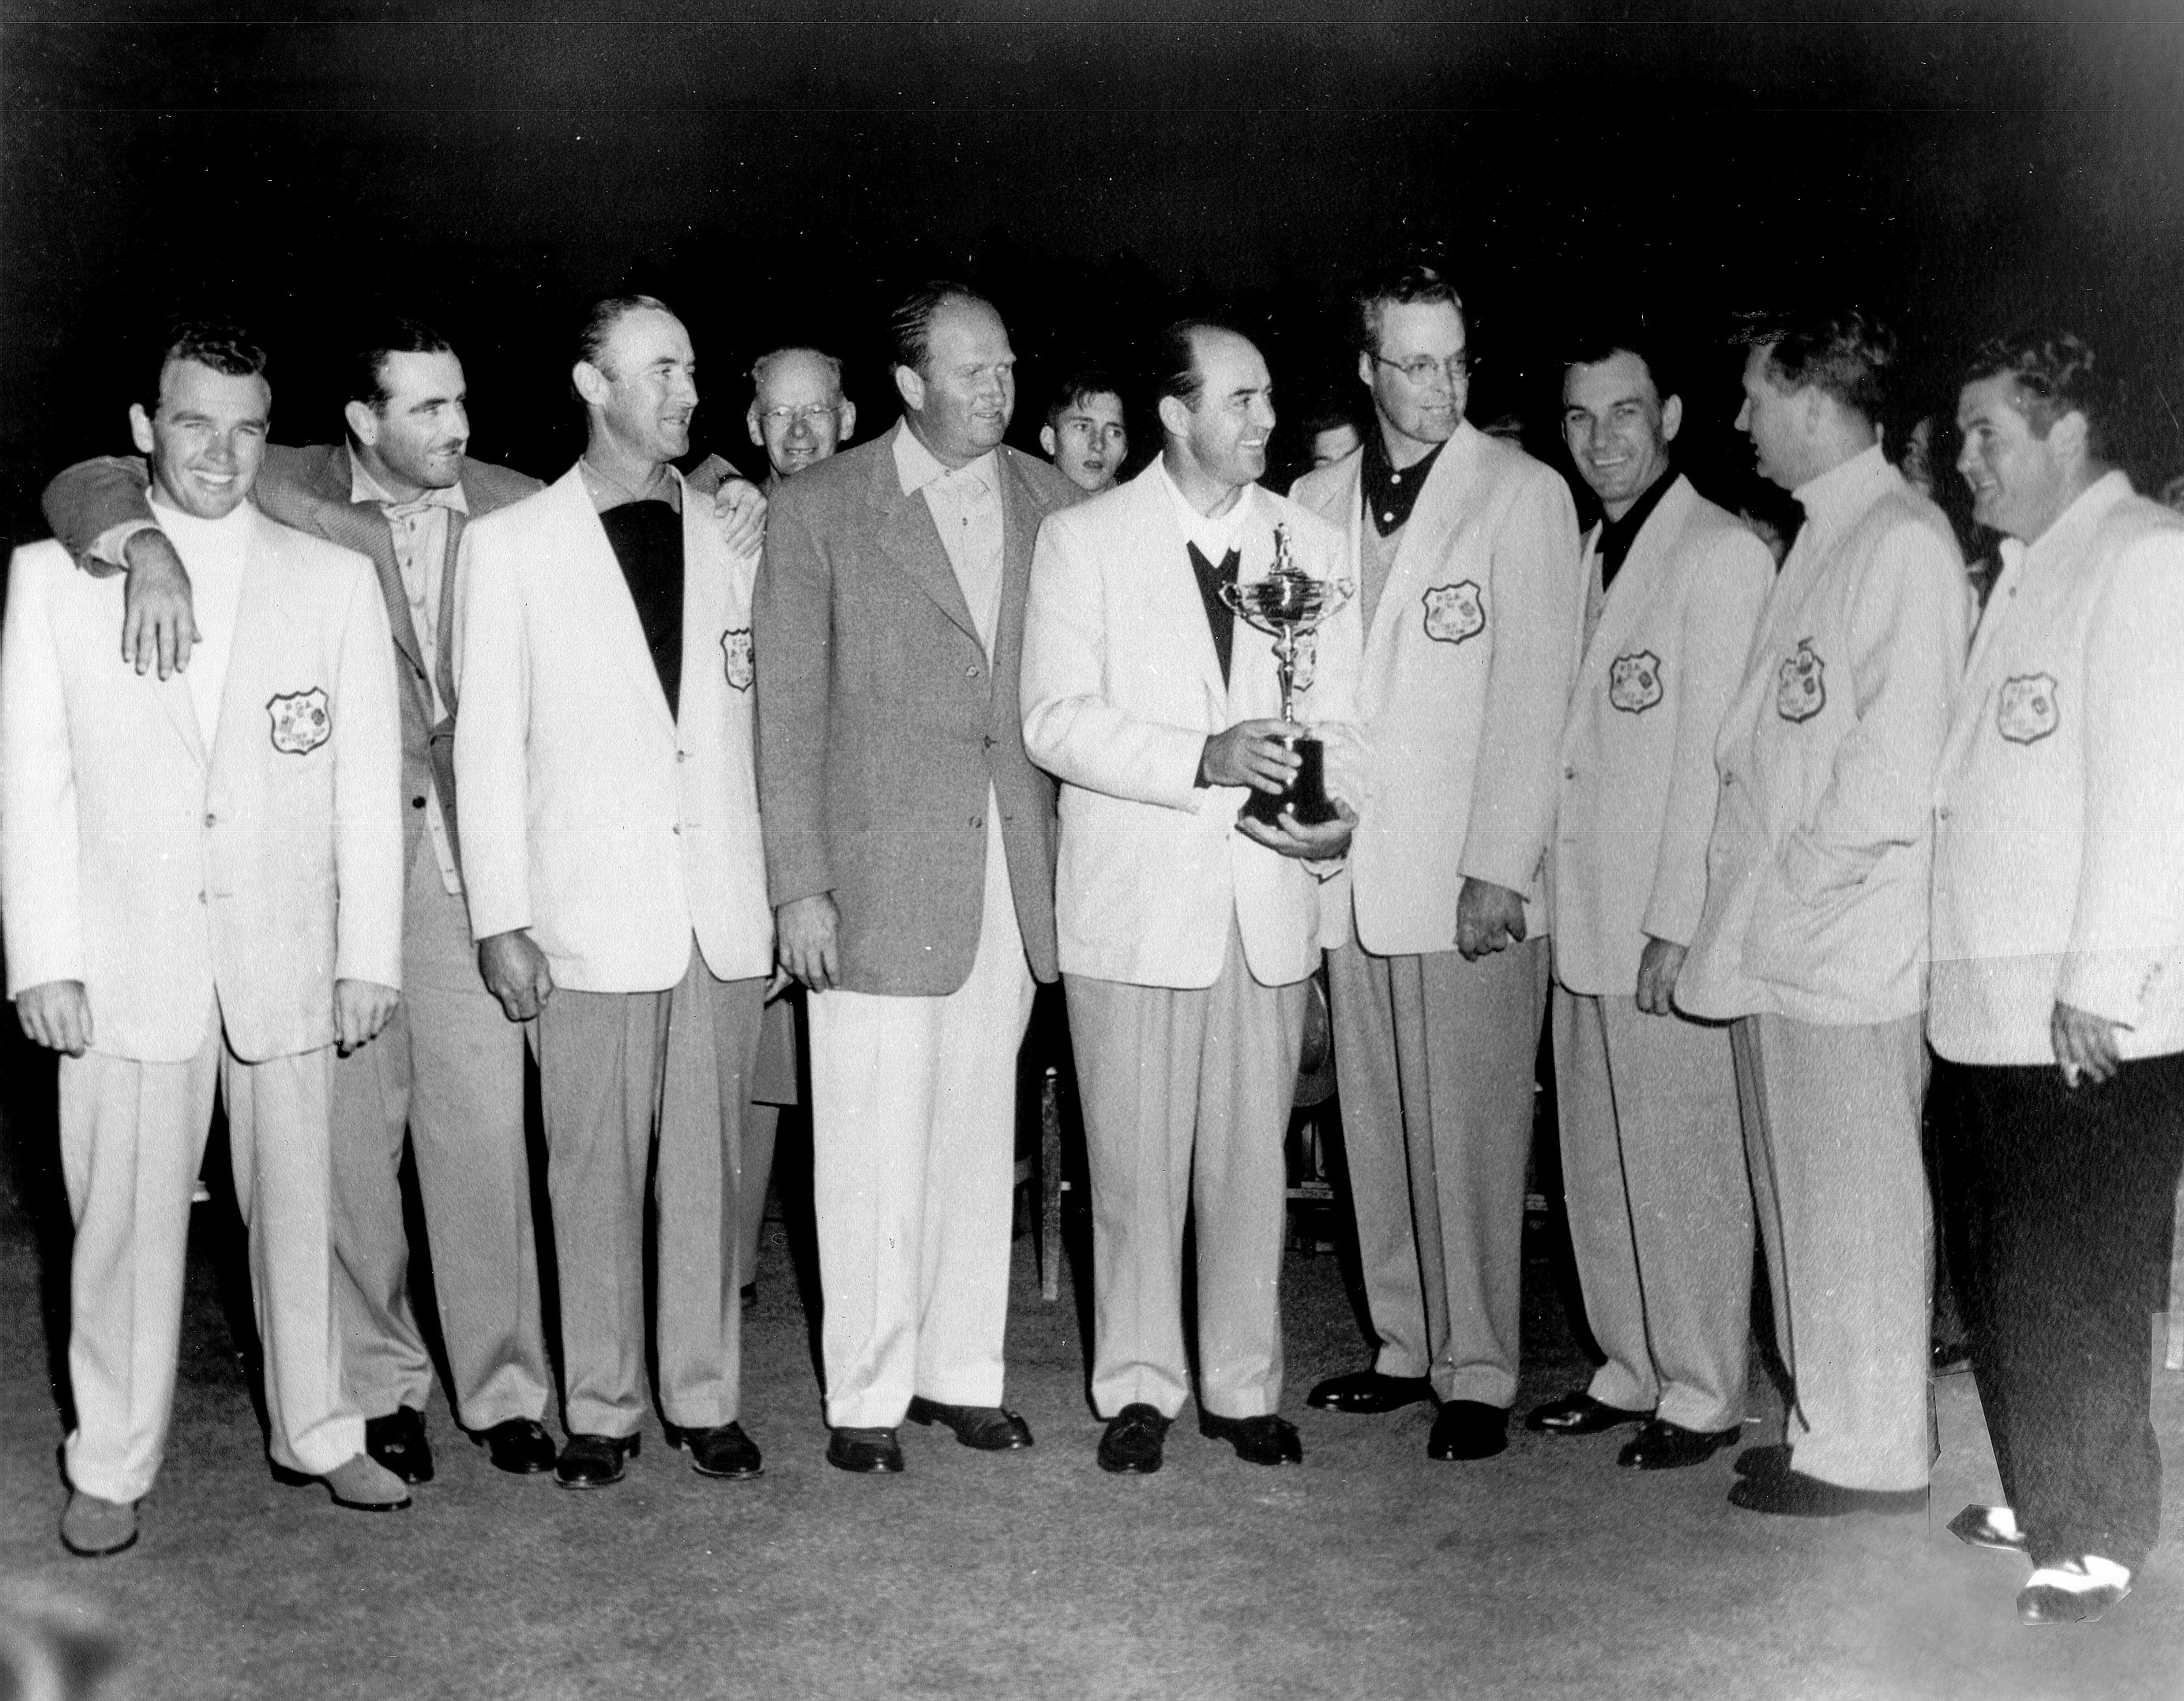 The victorious American Ryder Cup team in 1951 at Pinehurst.